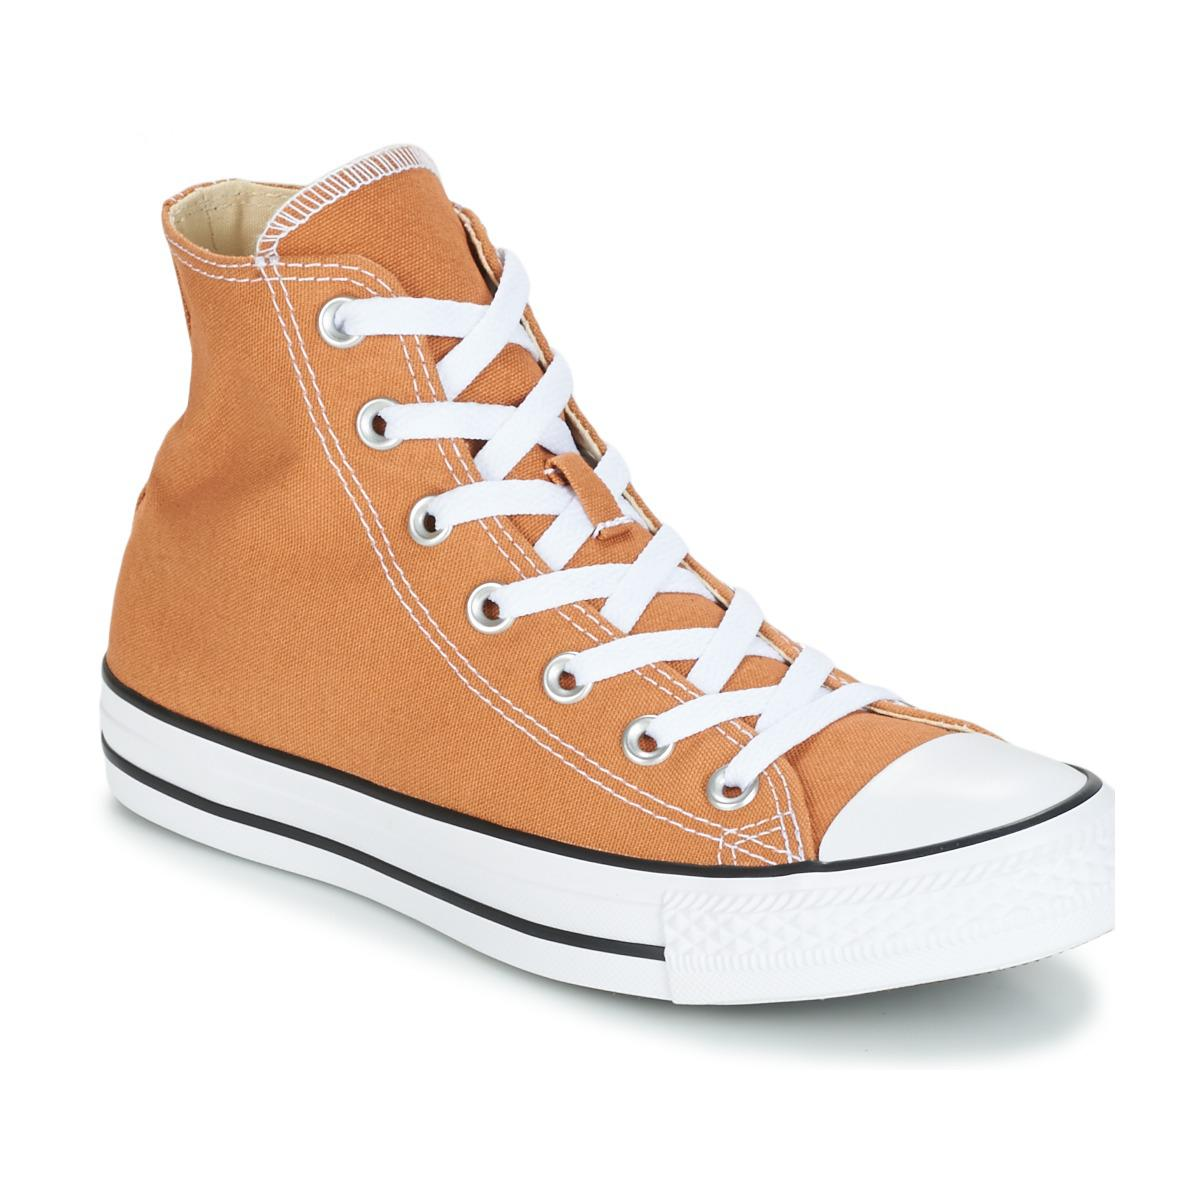 dfba47305590 Converse Chuck Taylor All Star Seasonal Color Hi Raw Sugar Shoes (high-top  Trainers) in Yellow - Lyst